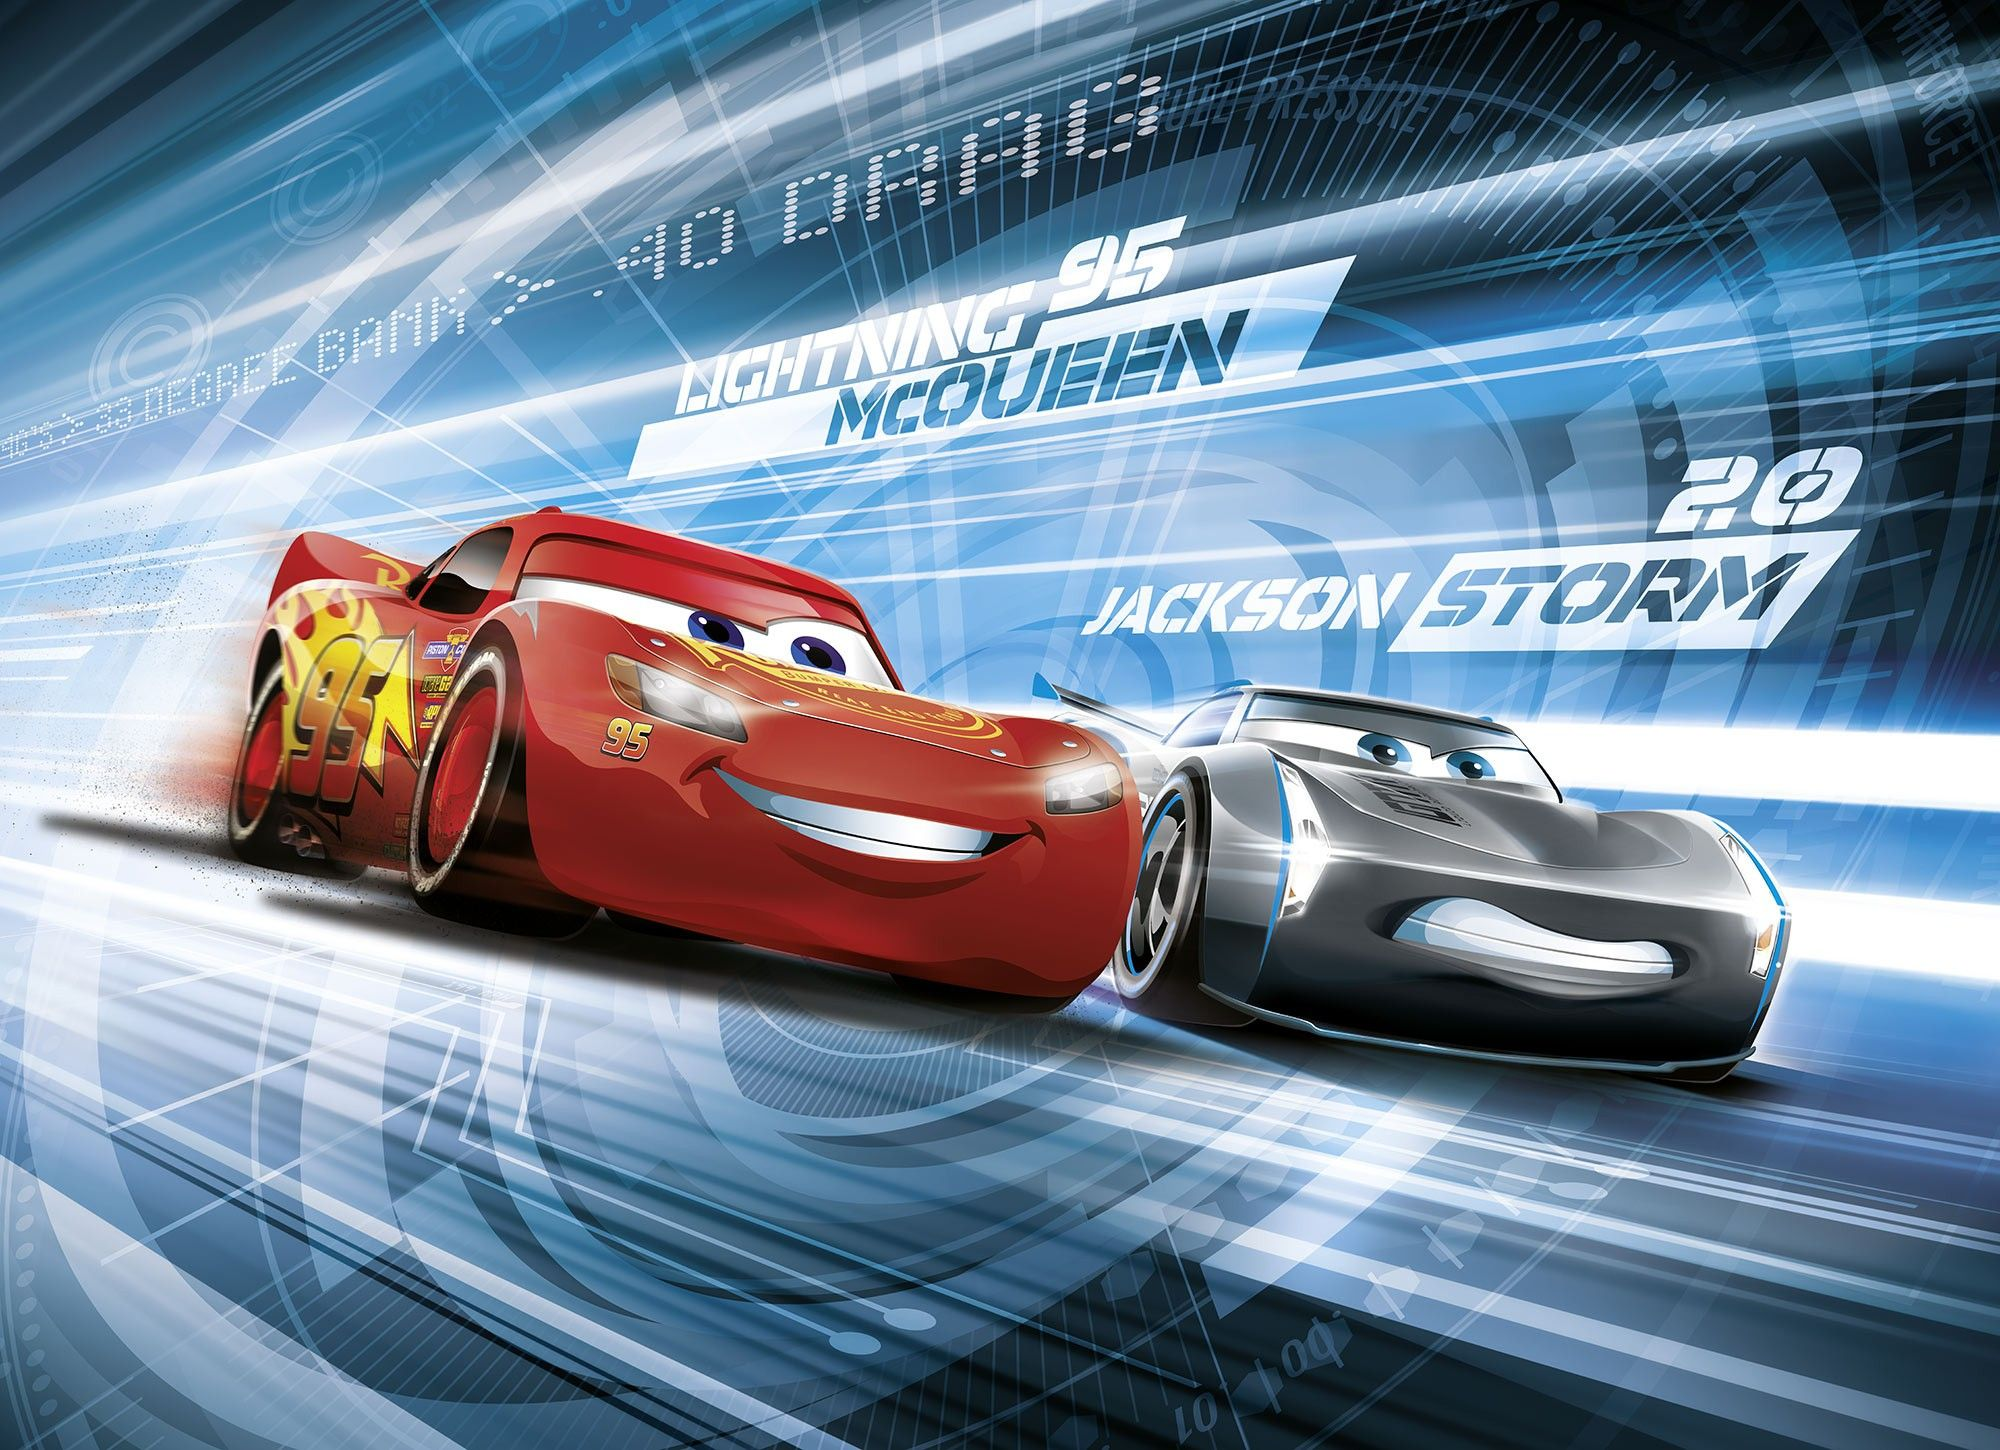 Wall mural photo wallpaper cars 3 disney kids bedroom boy for Disney cars wall mural full wall huge